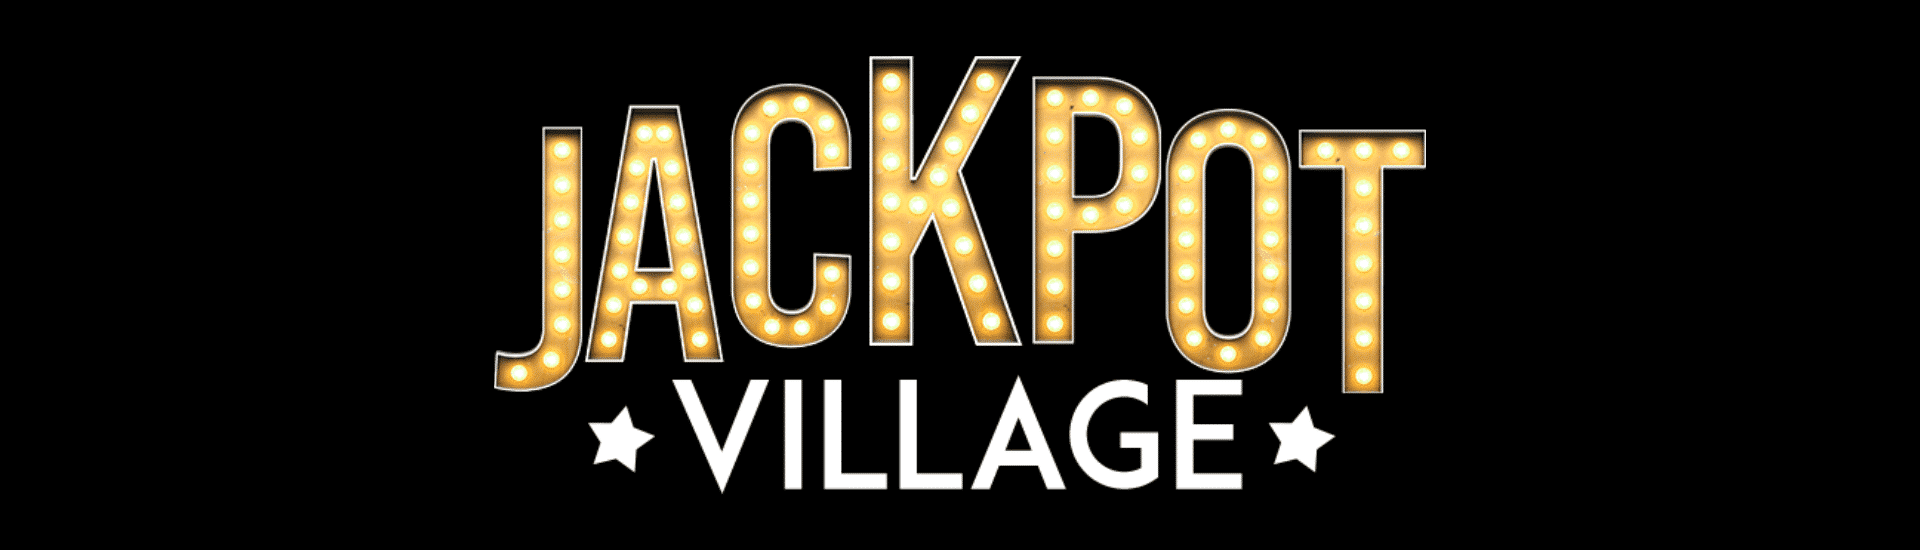 Jackpot Village Featured Image